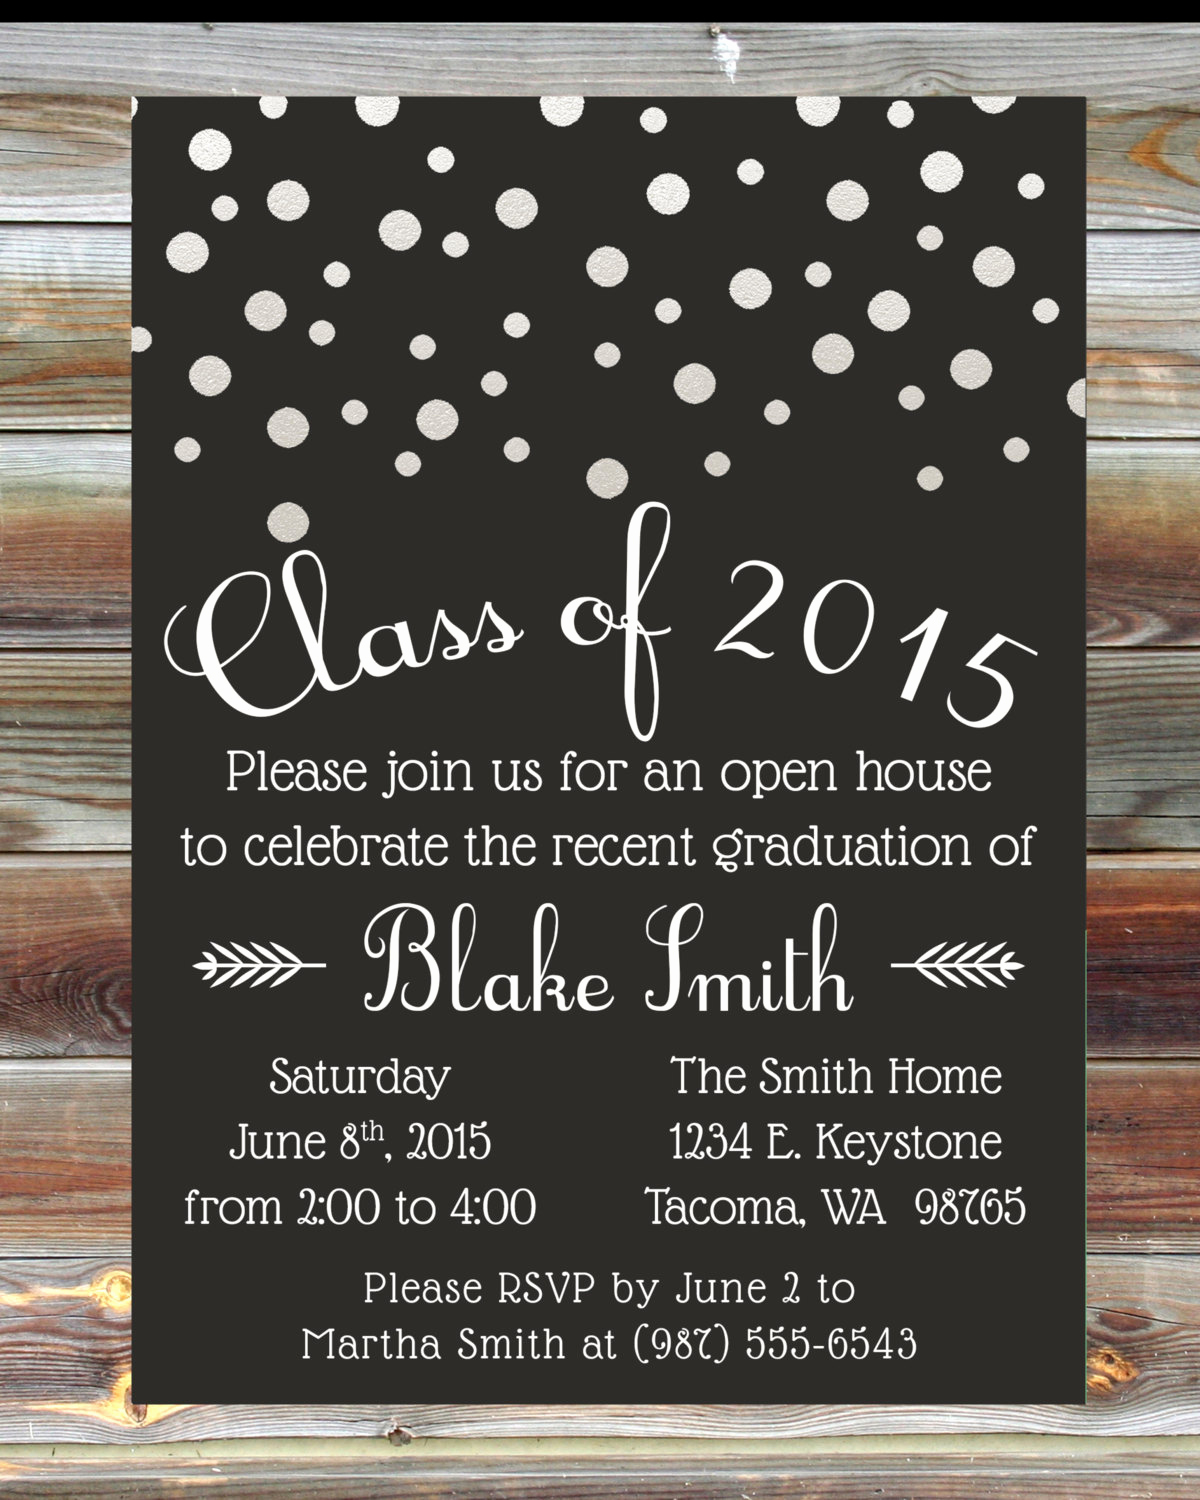 Graduation Open House Invitation Wording Luxury Custom Color Graduation Open House Invitation Champagne Grad